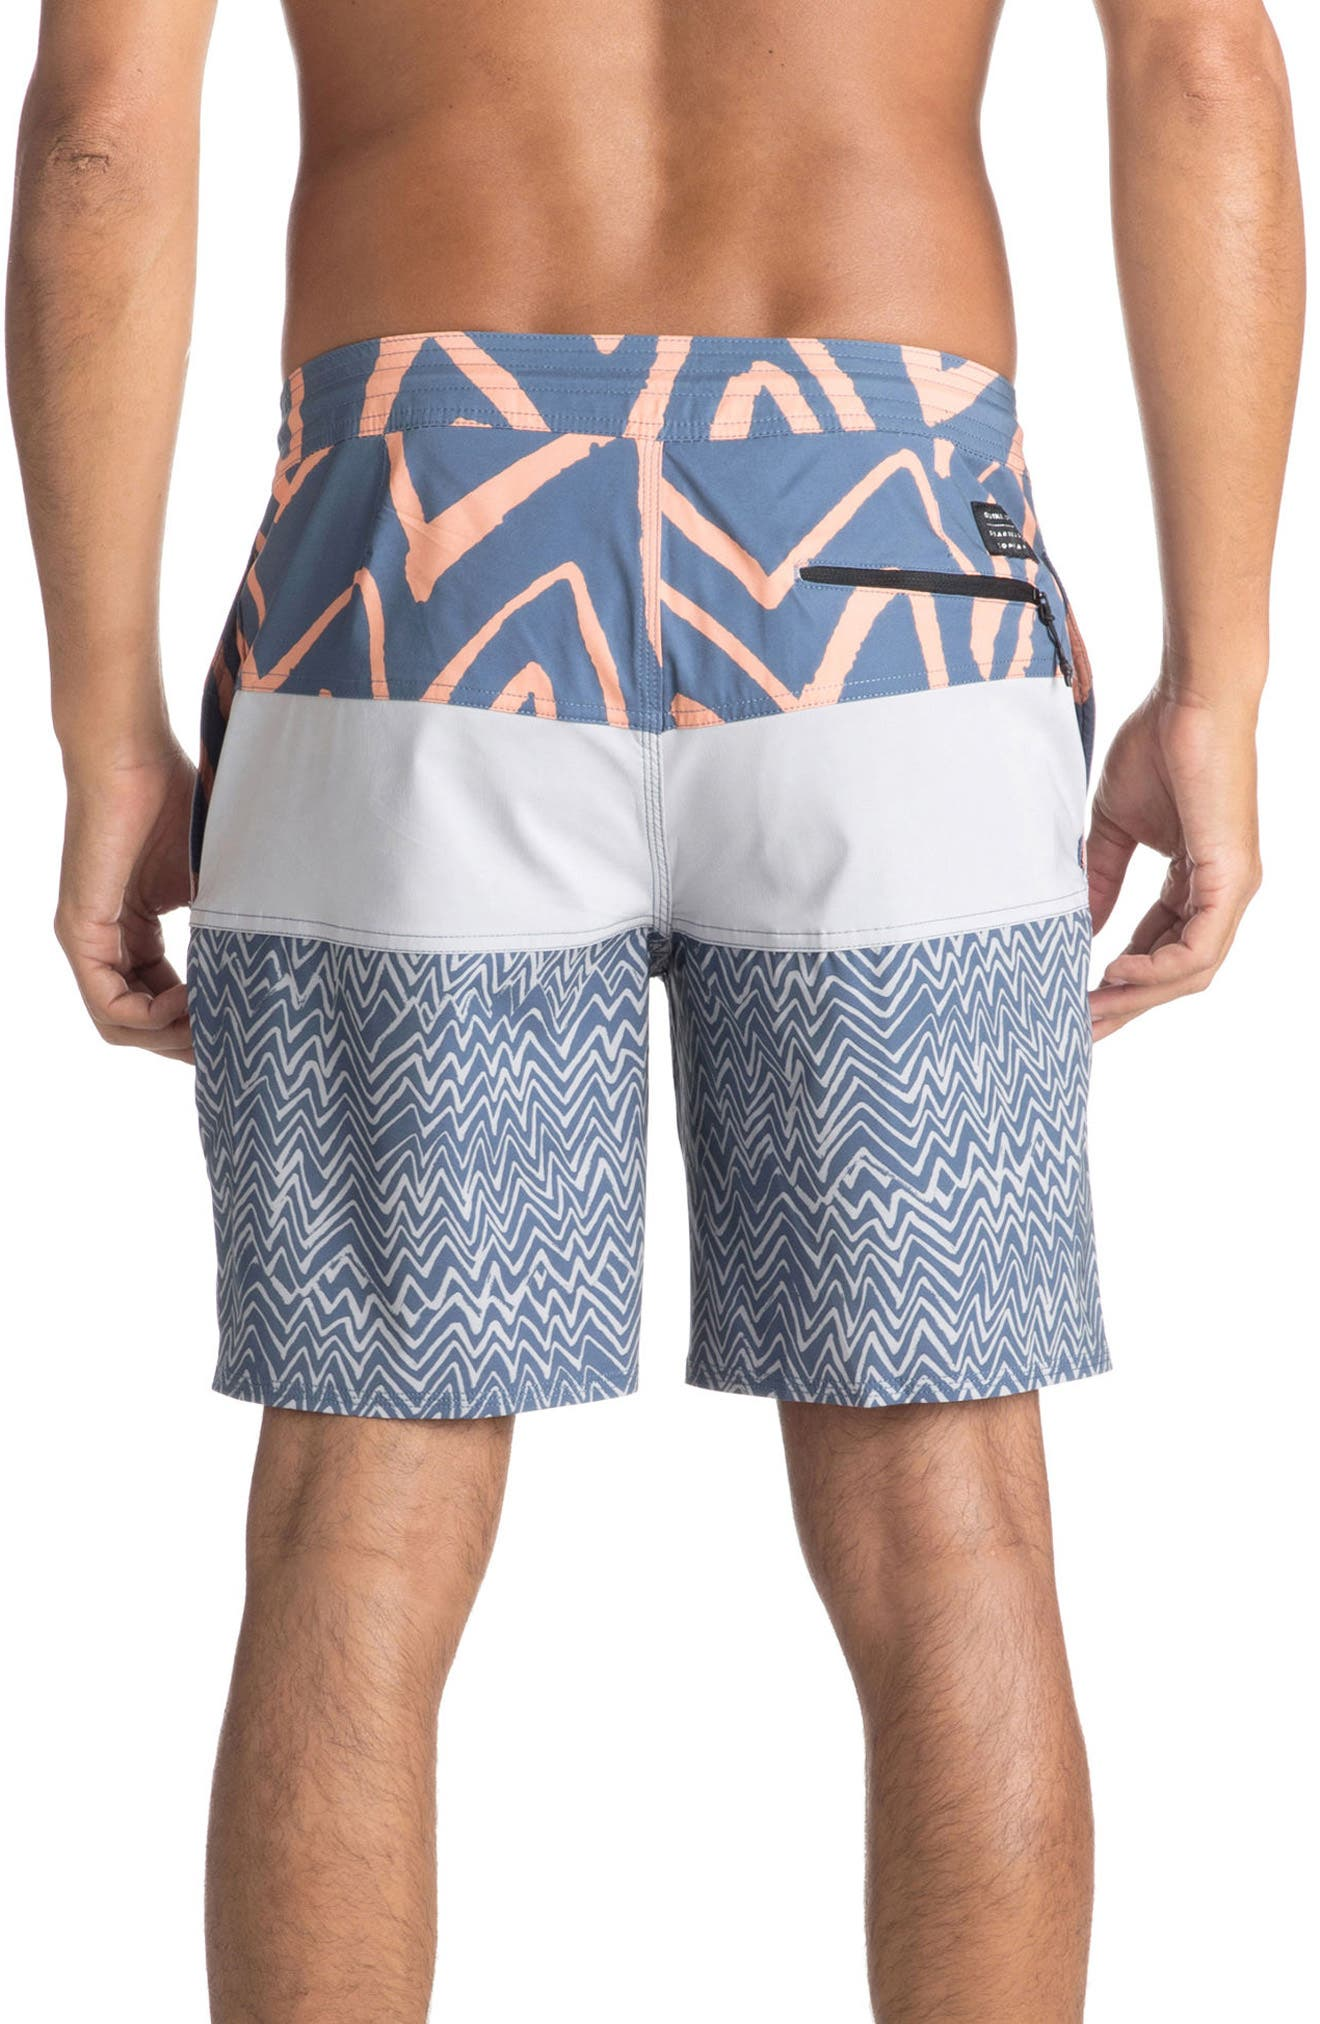 TechTonic Board Shorts,                             Alternate thumbnail 2, color,                             020